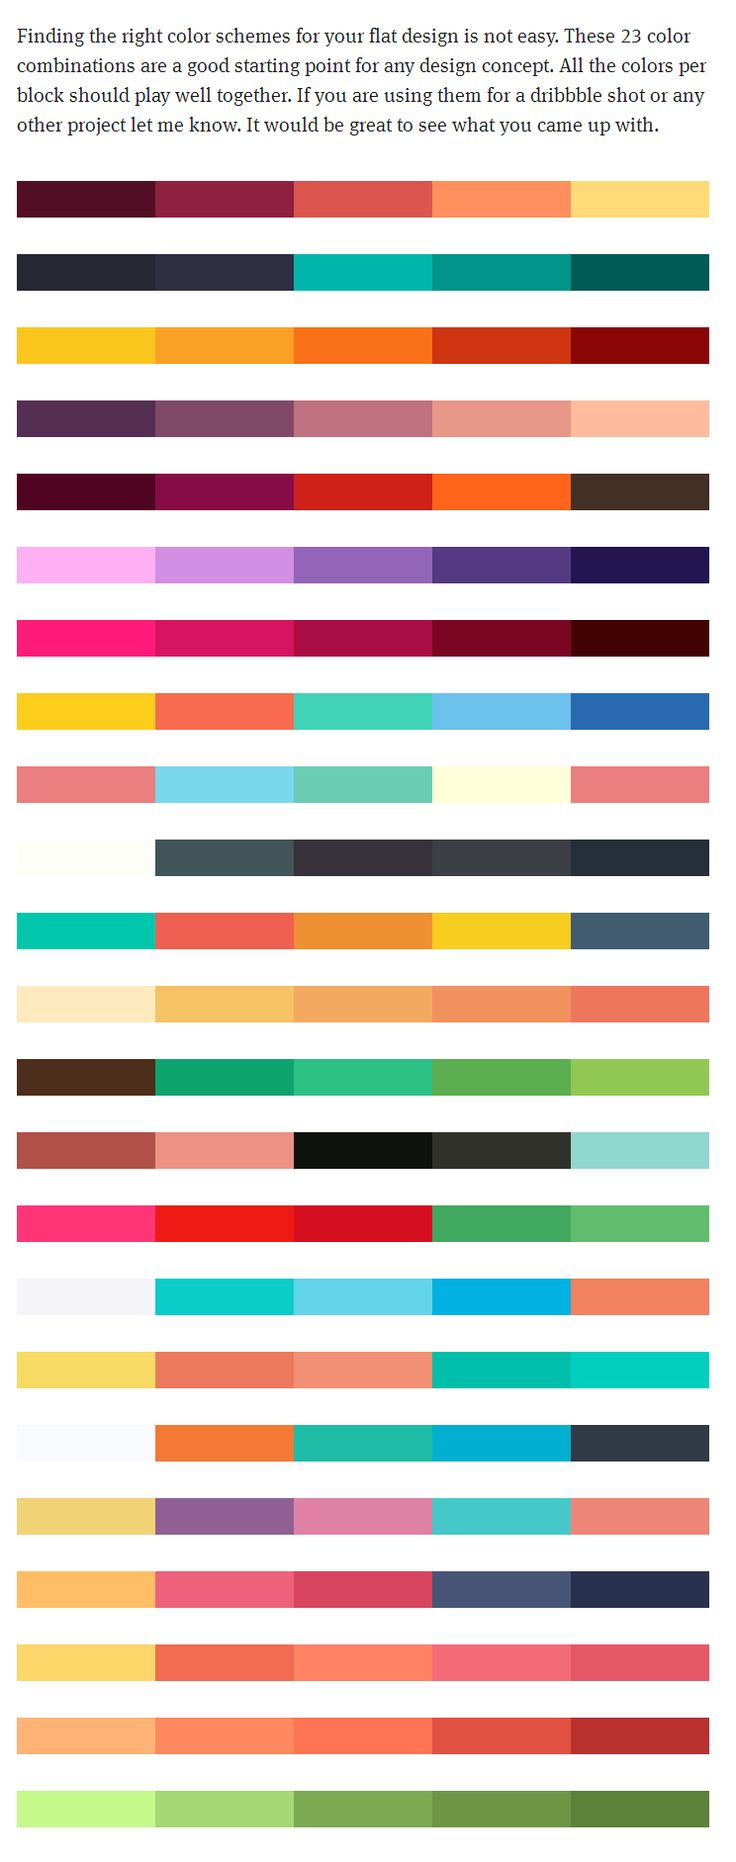 23 color schemes as an inspiration or starting point for